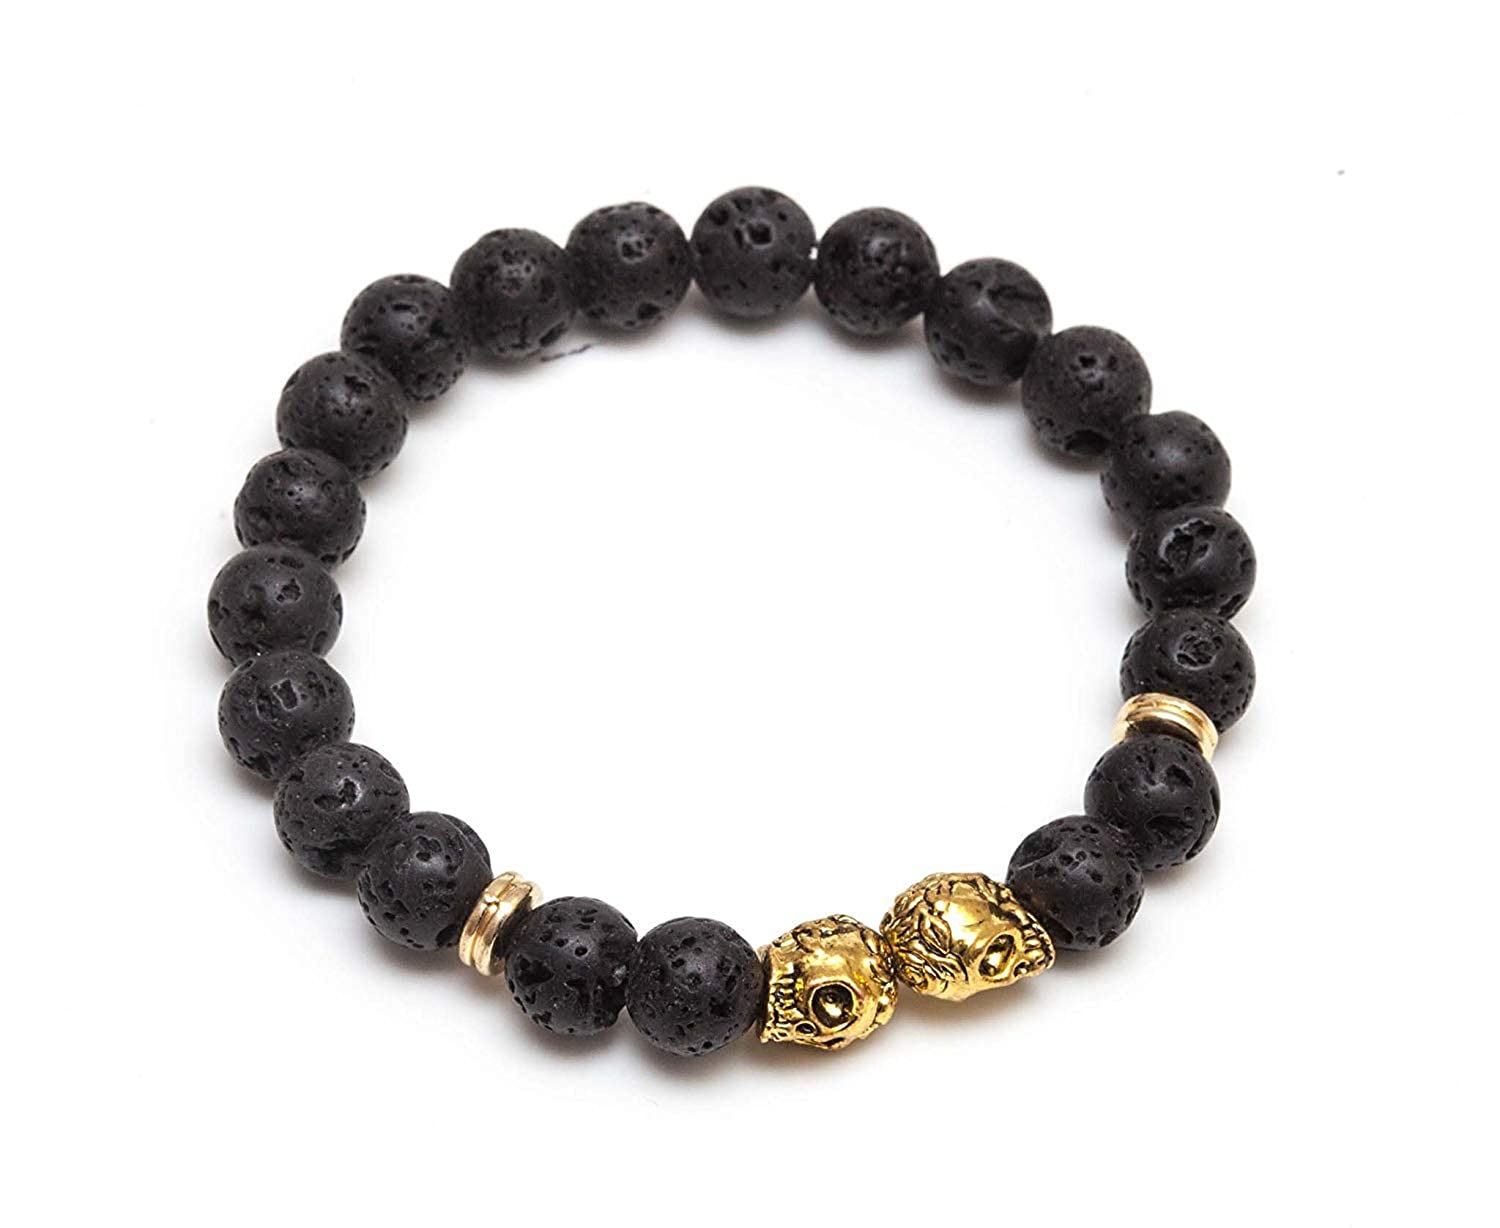 Koky Stone Beaded Stretch Bracelet for Men and Women LEWO